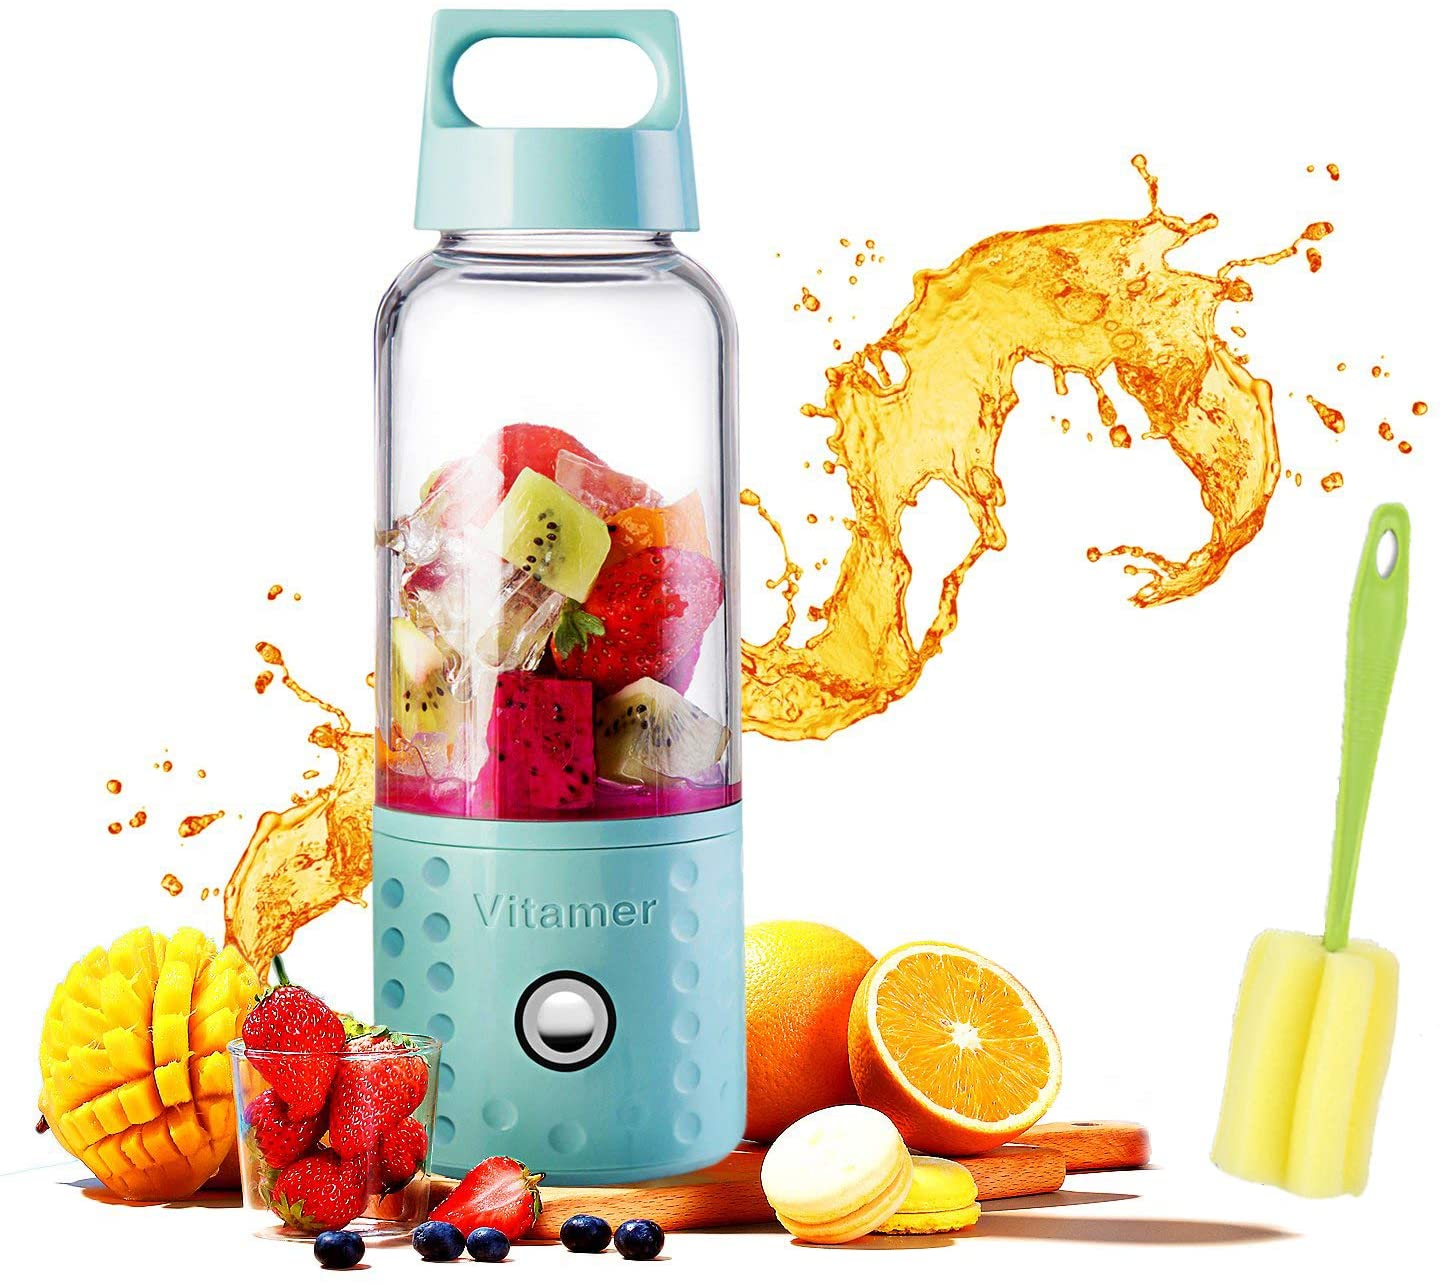 CAFE 63 Vitamer Portable USB Rechargeable Mini Juicer and Portable Blenders